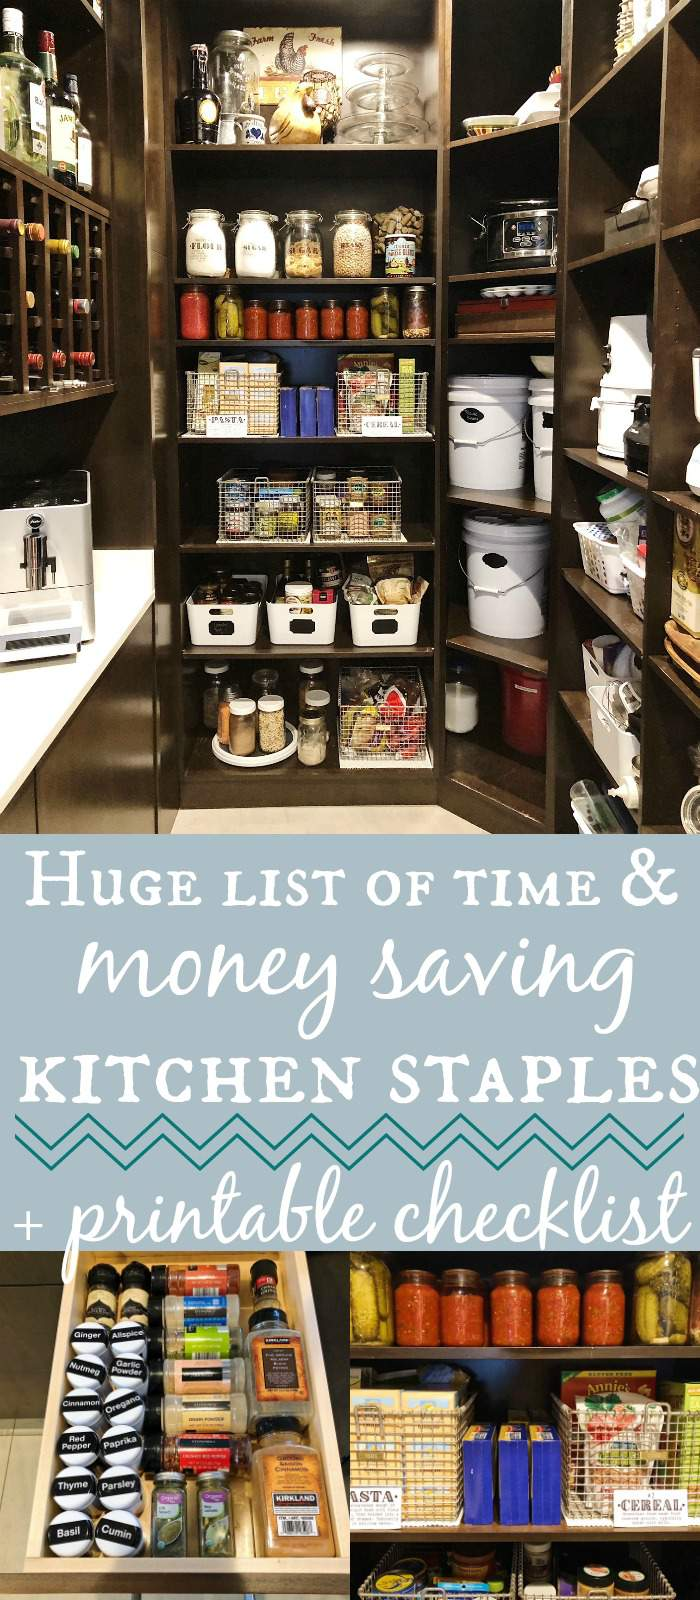 Time & Money Saving Kitchen Staples for Your Pantry, Fridge & Freezer